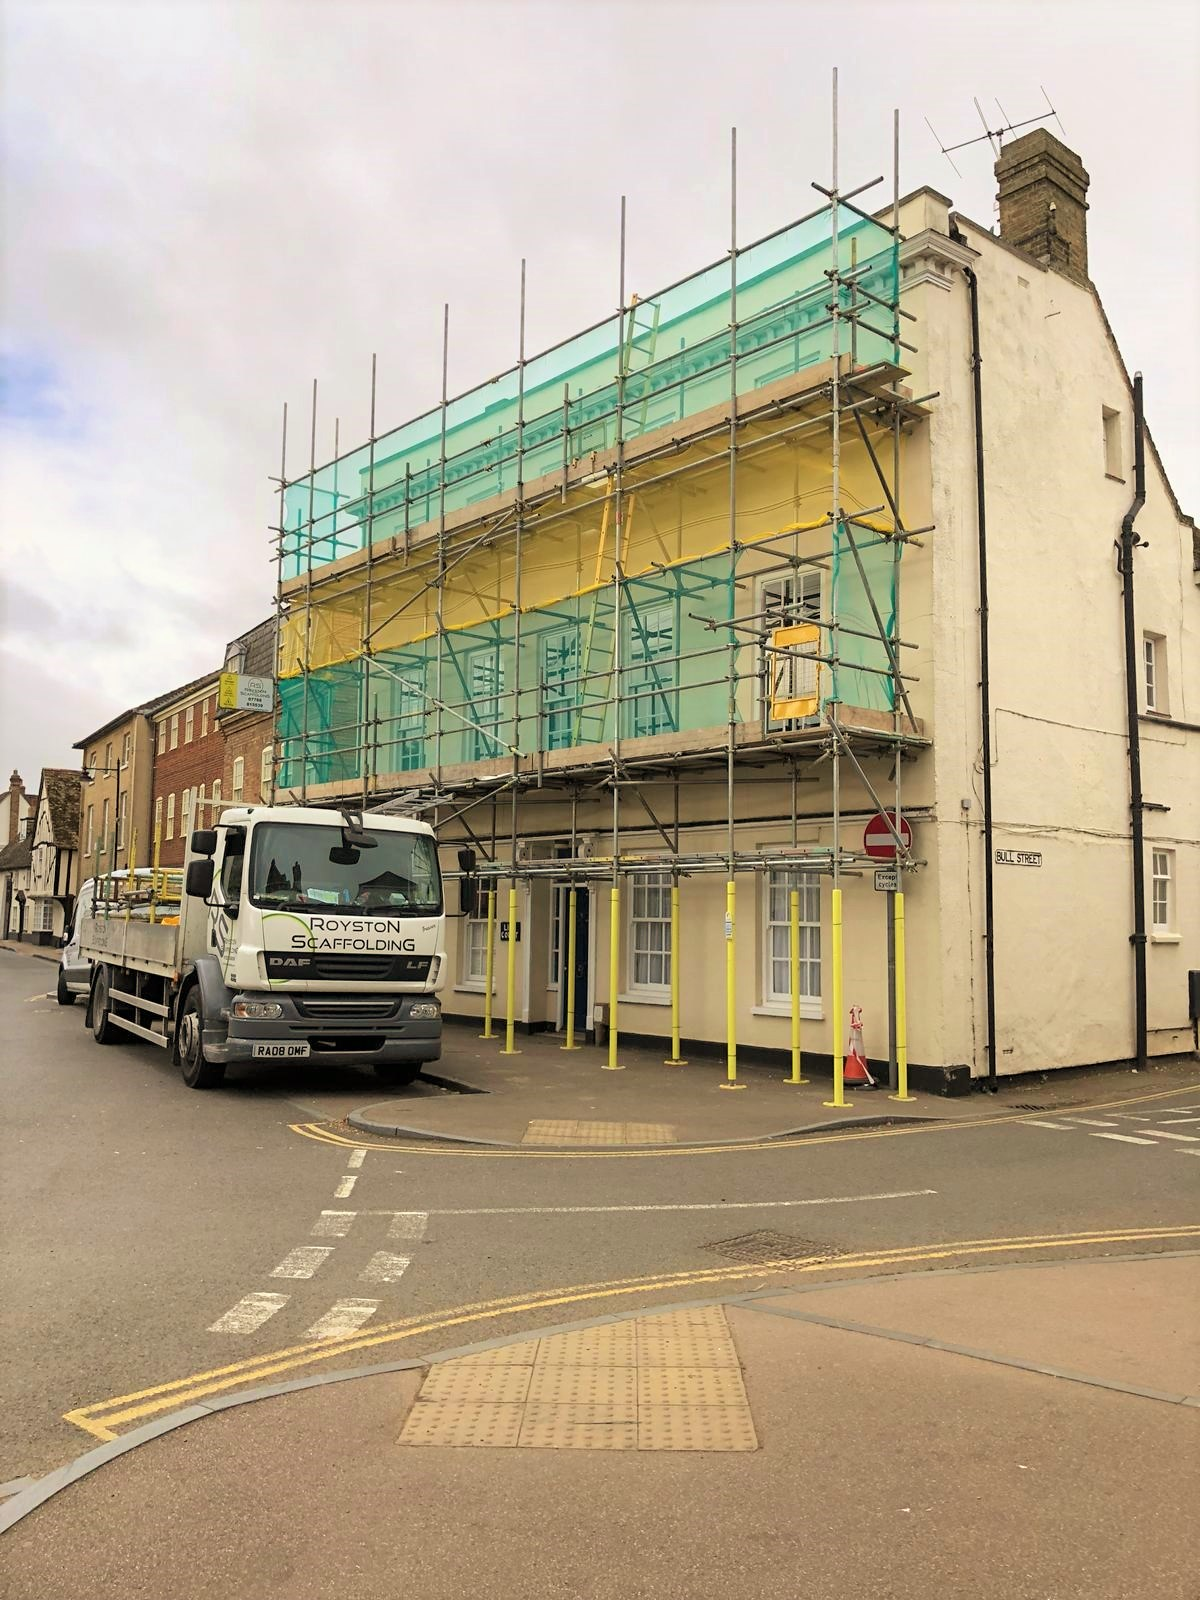 Royston-Scaffolding-projects-8.jpeg